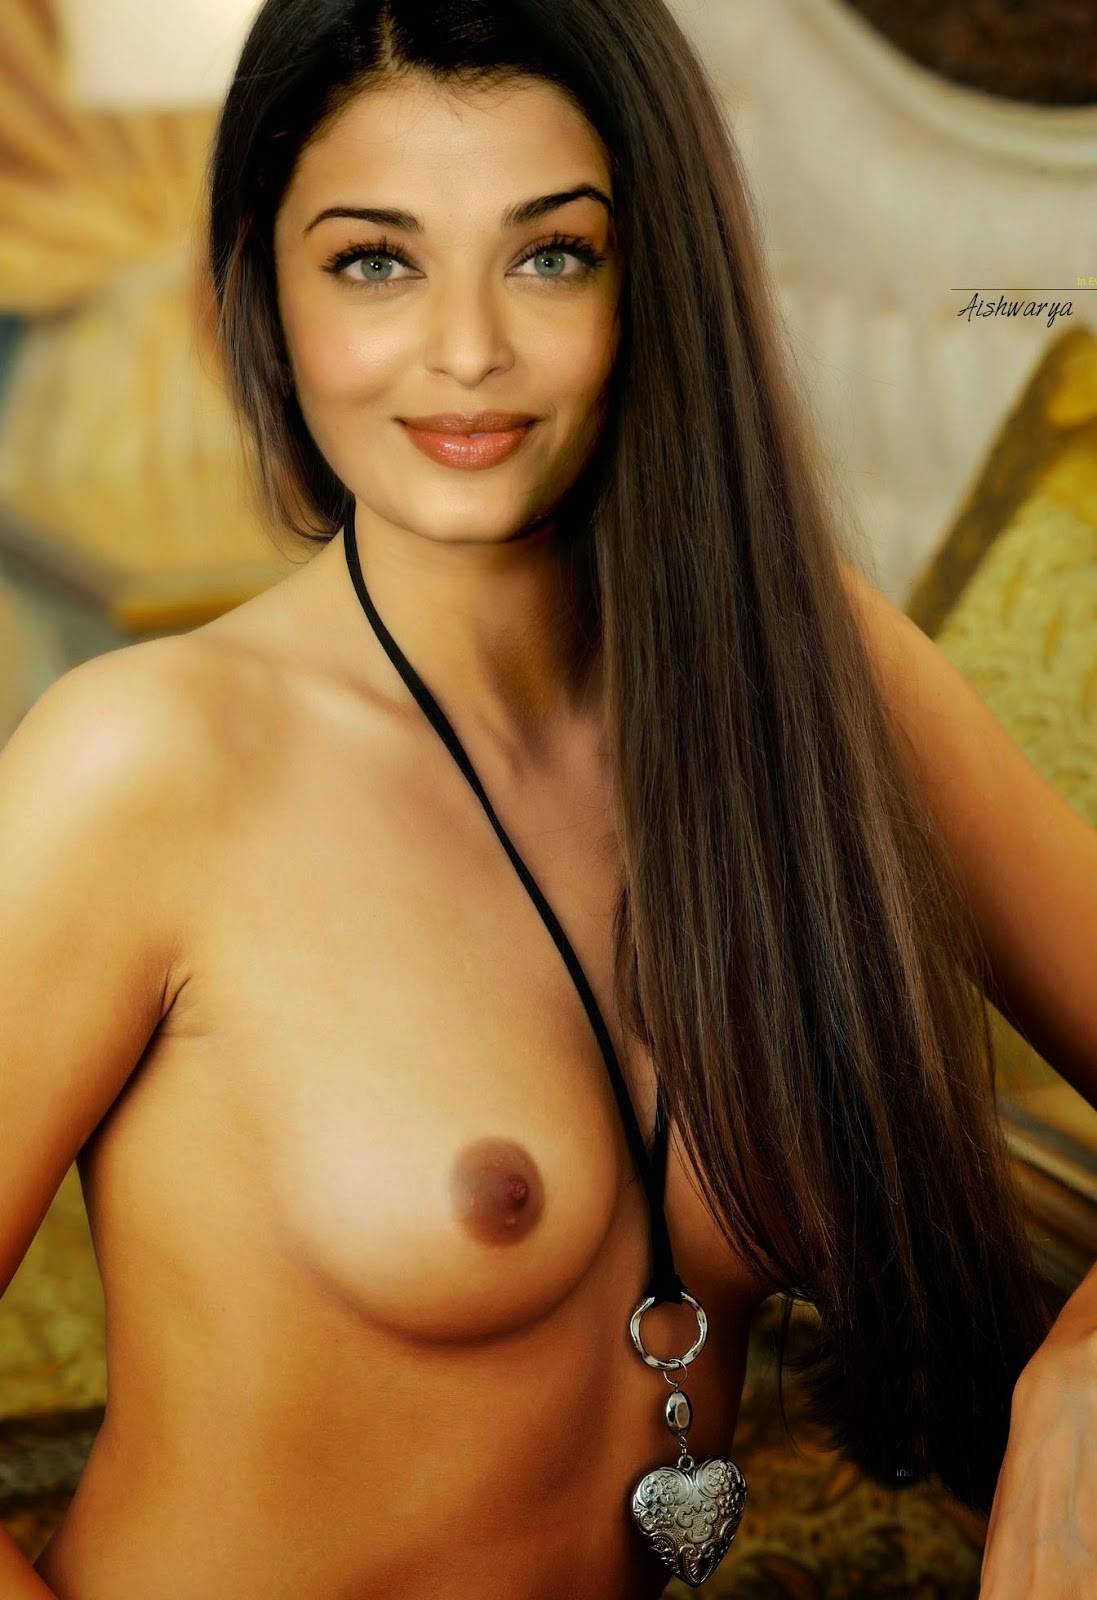 Rai naked aishwarya hot